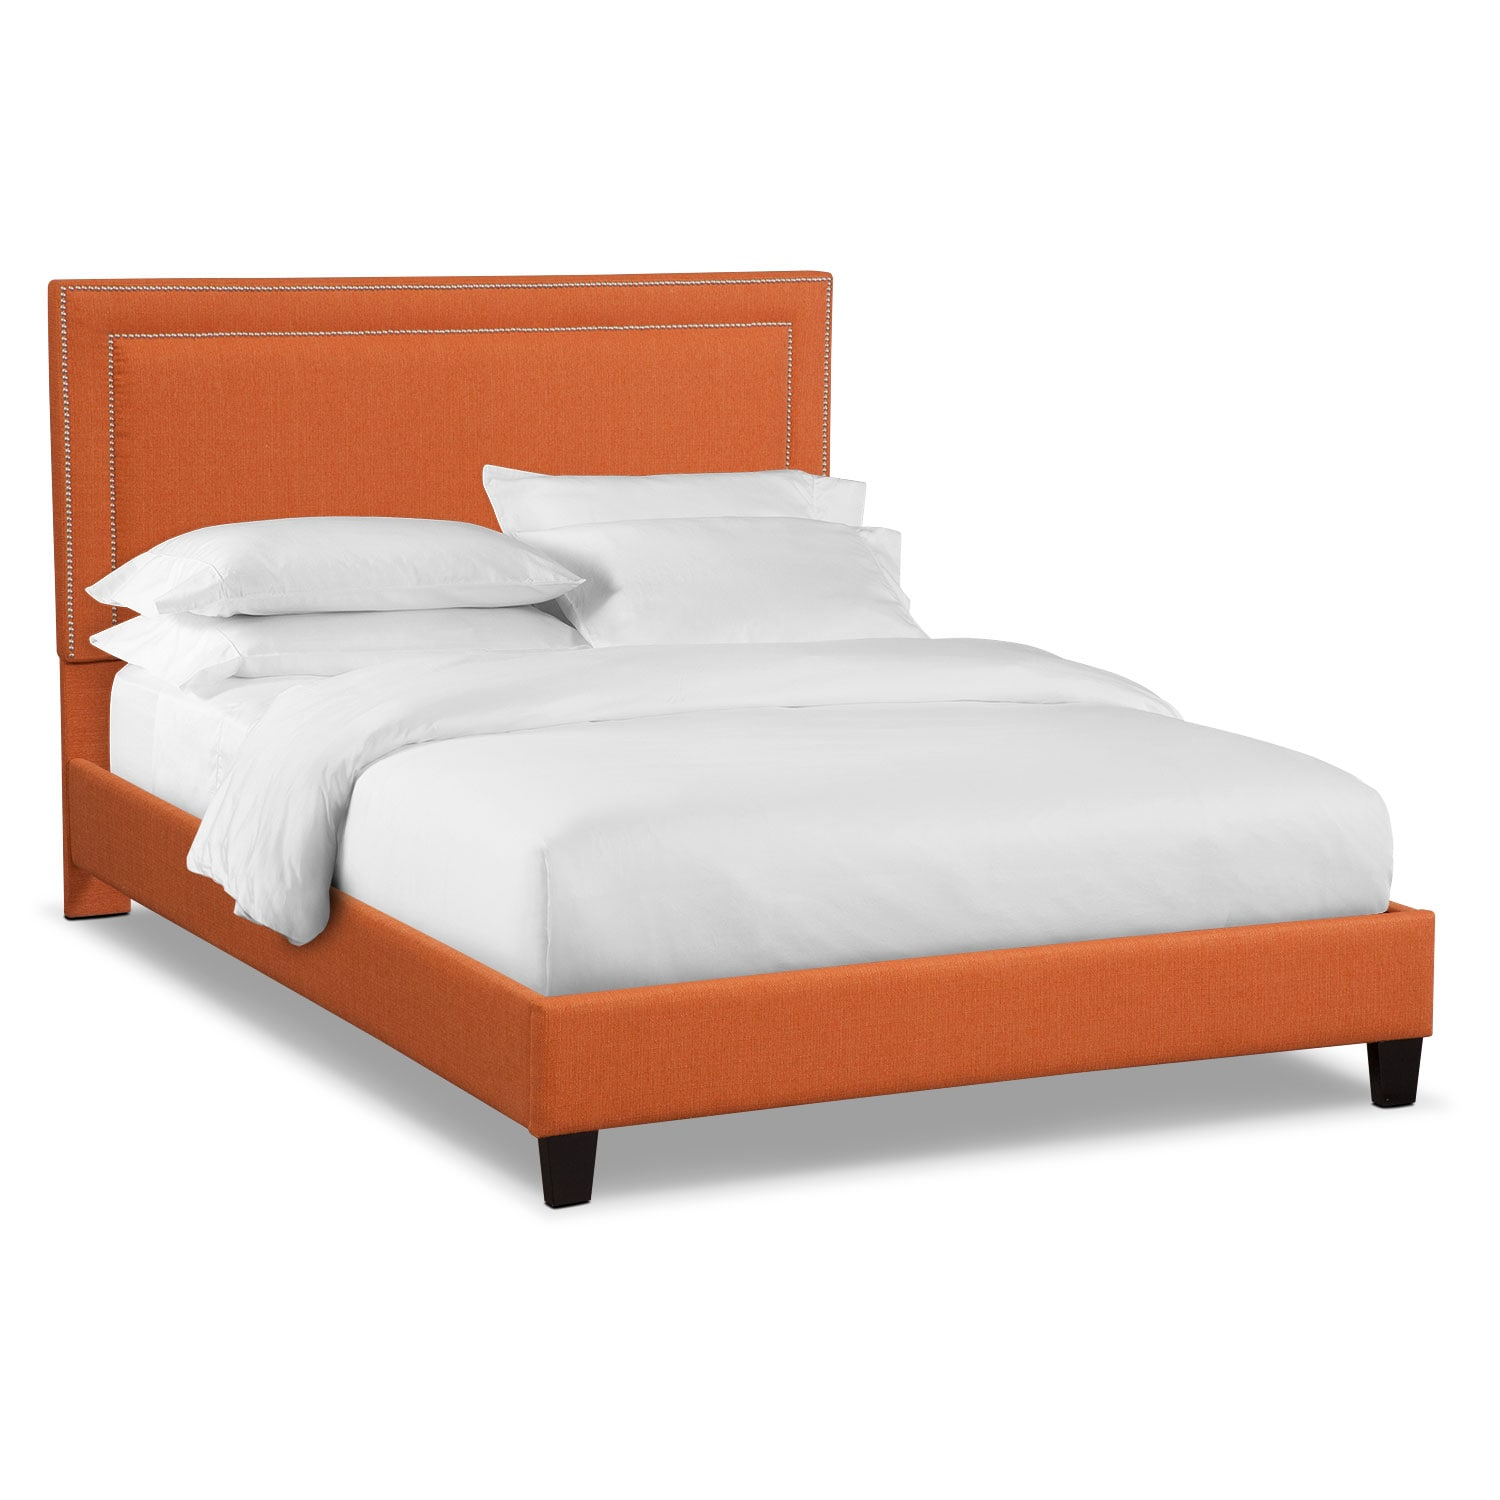 Bedroom Furniture - Natalie King Upholstered Bed - Orange